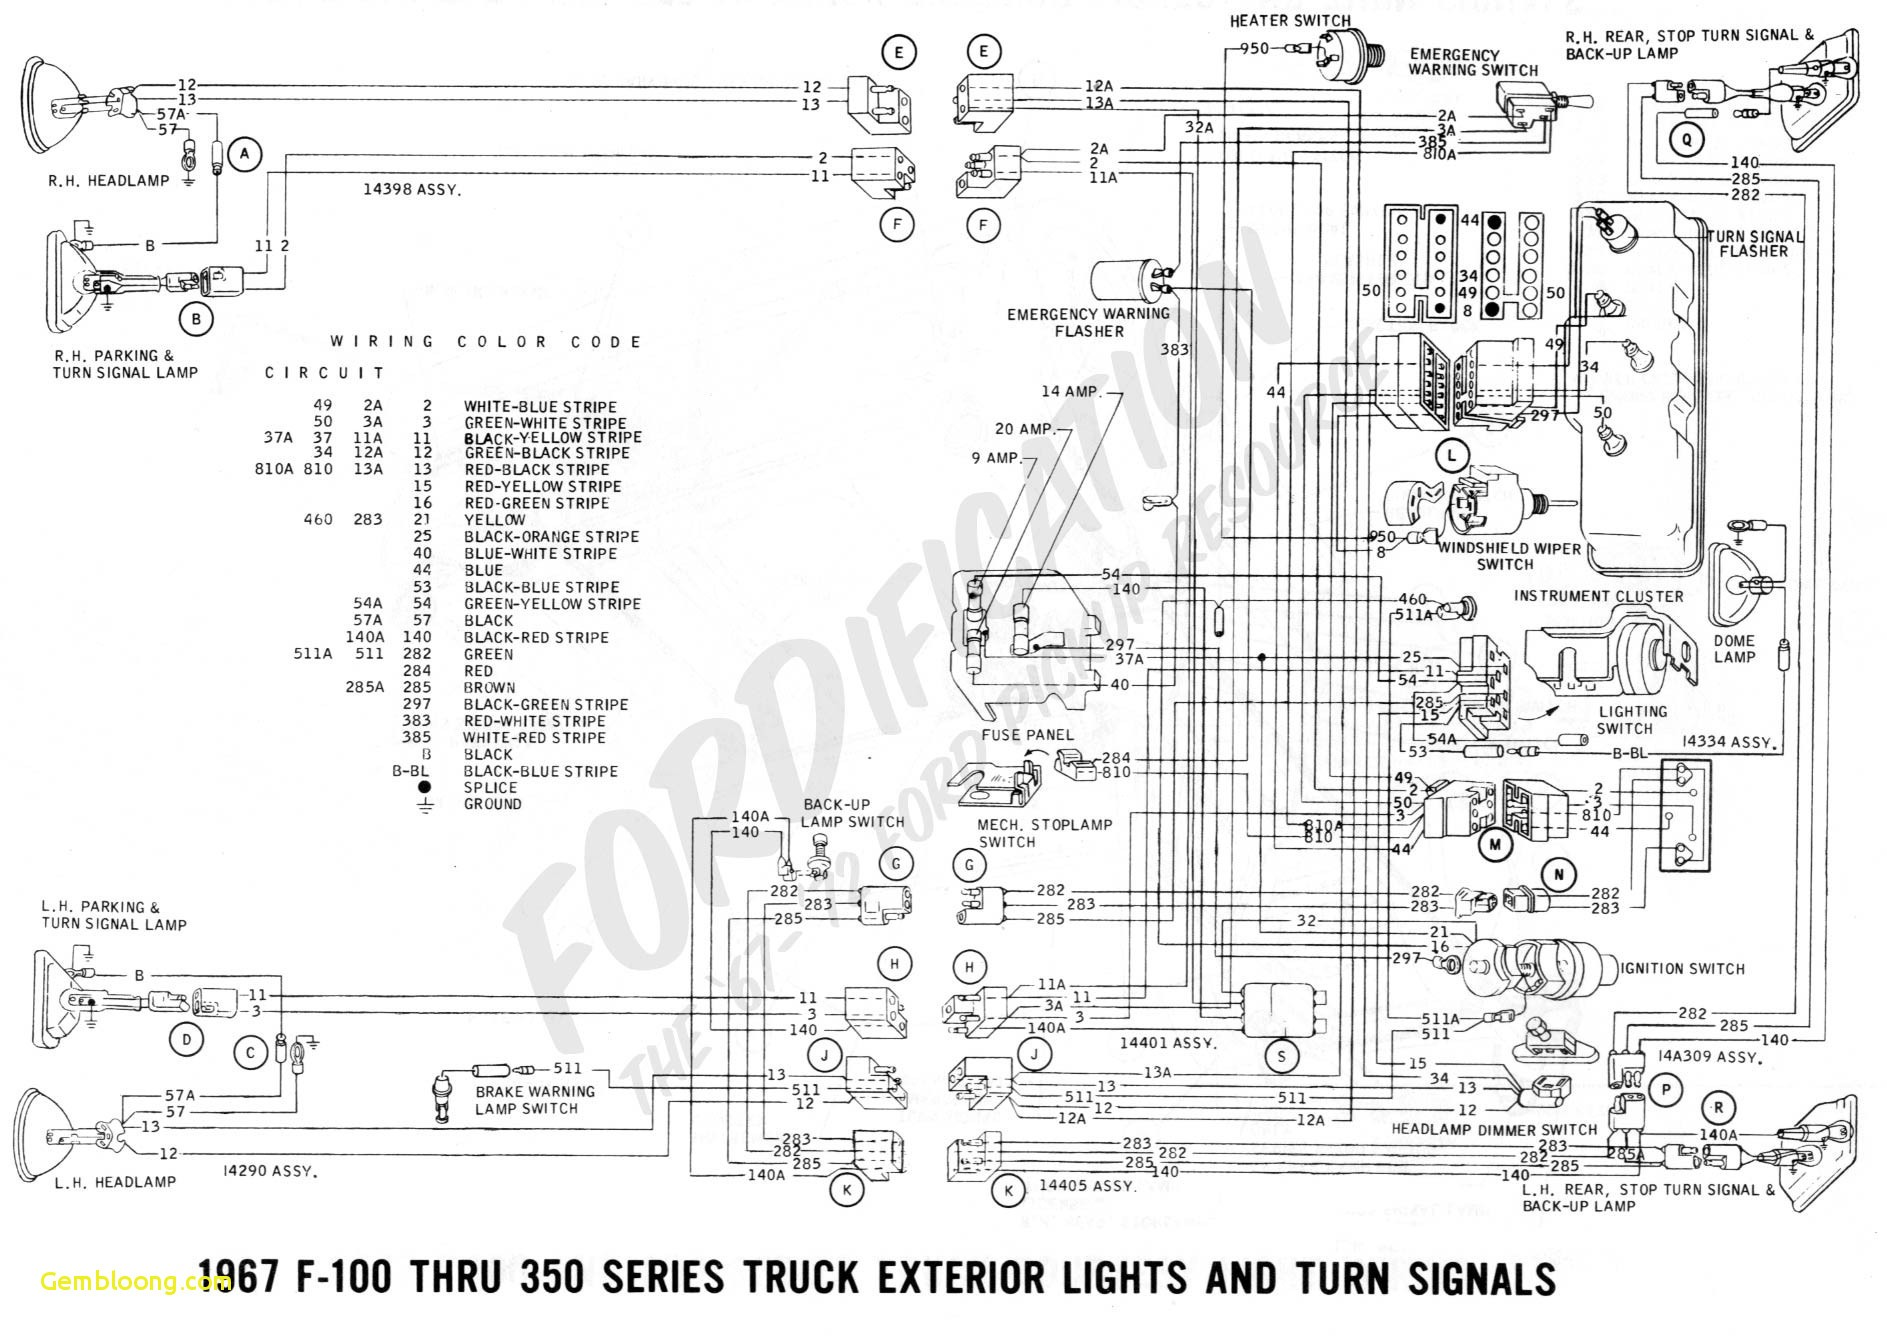 Ford Fiesta Engine Diagram Download ford Trucks Wiring Diagrams ford F150 Wiring Diagrams Best Of Ford Fiesta Engine Diagram